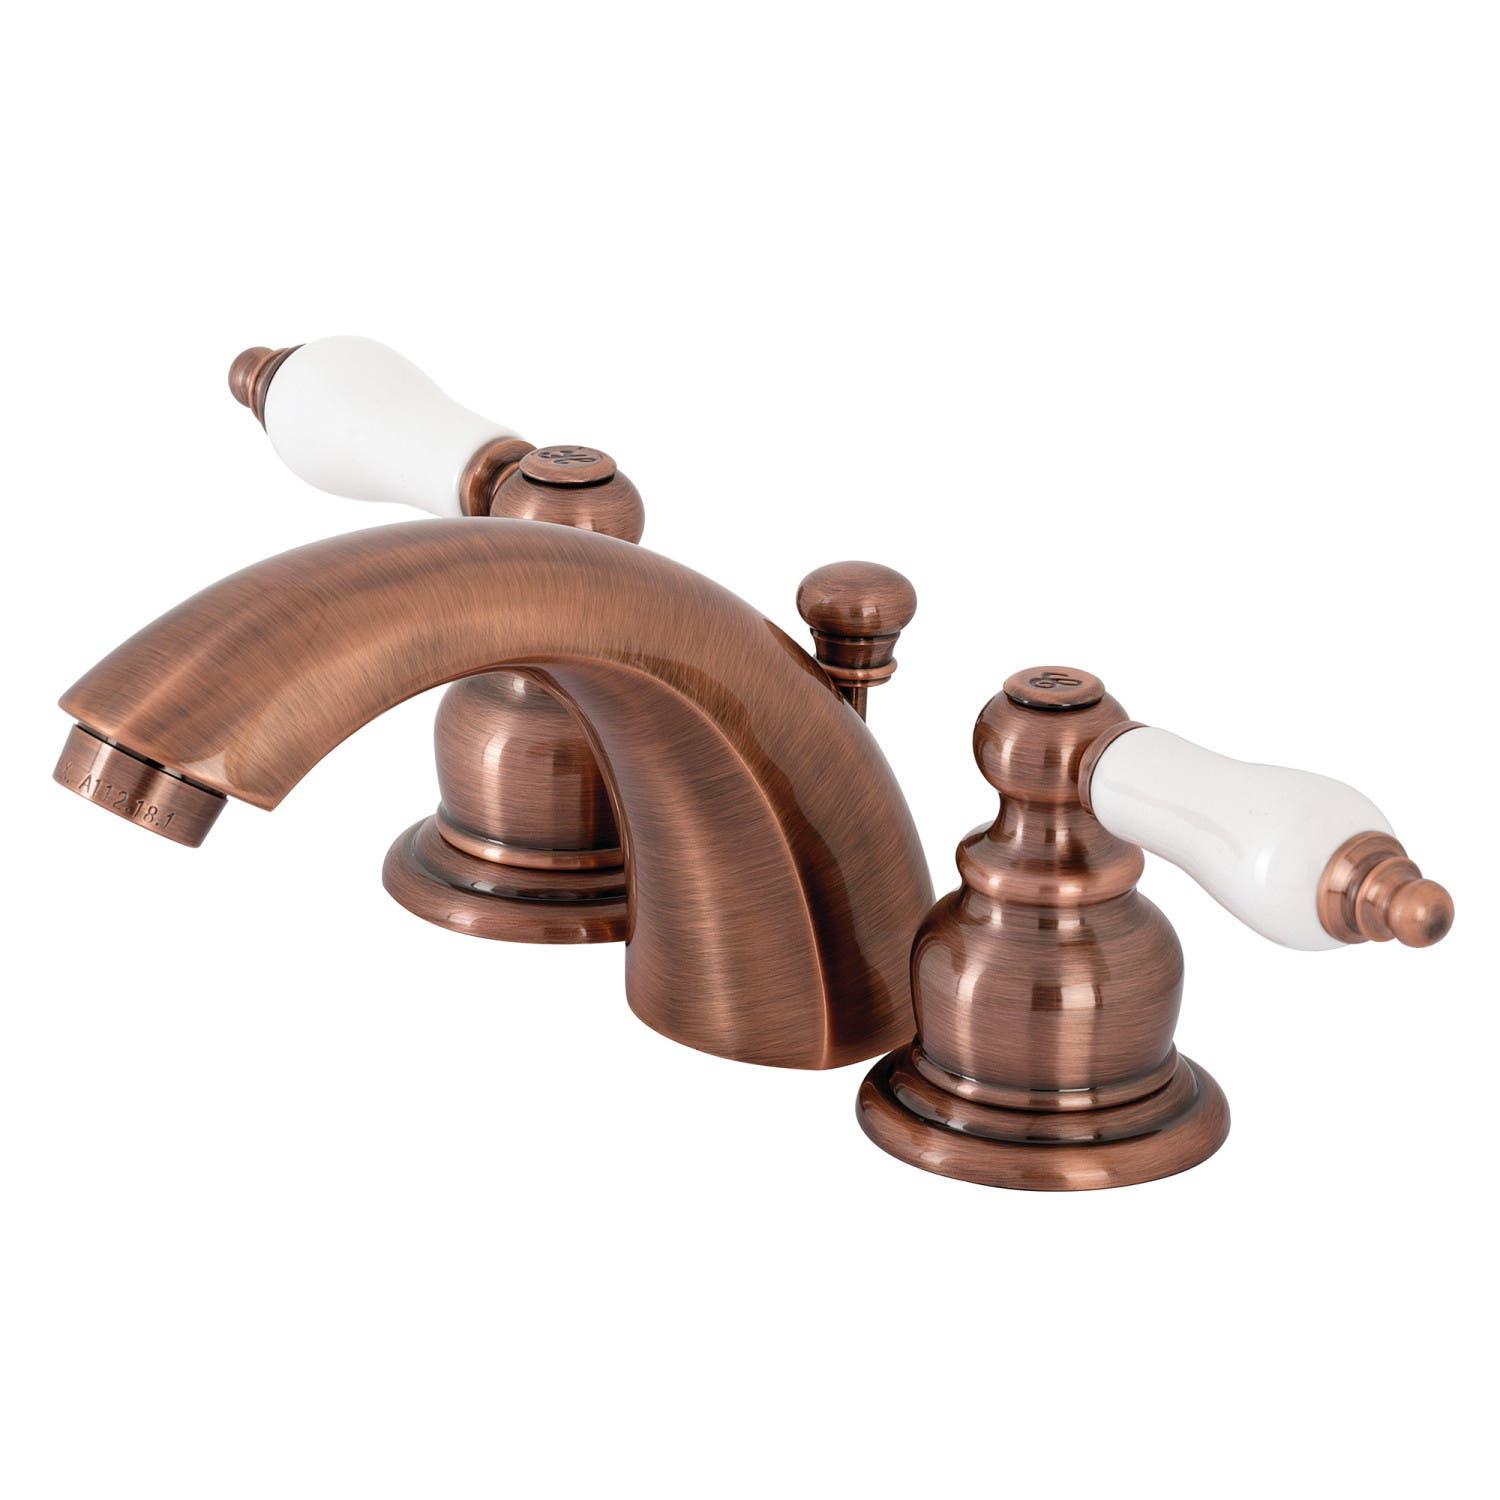 Copper Bathroom Faucet Image Of